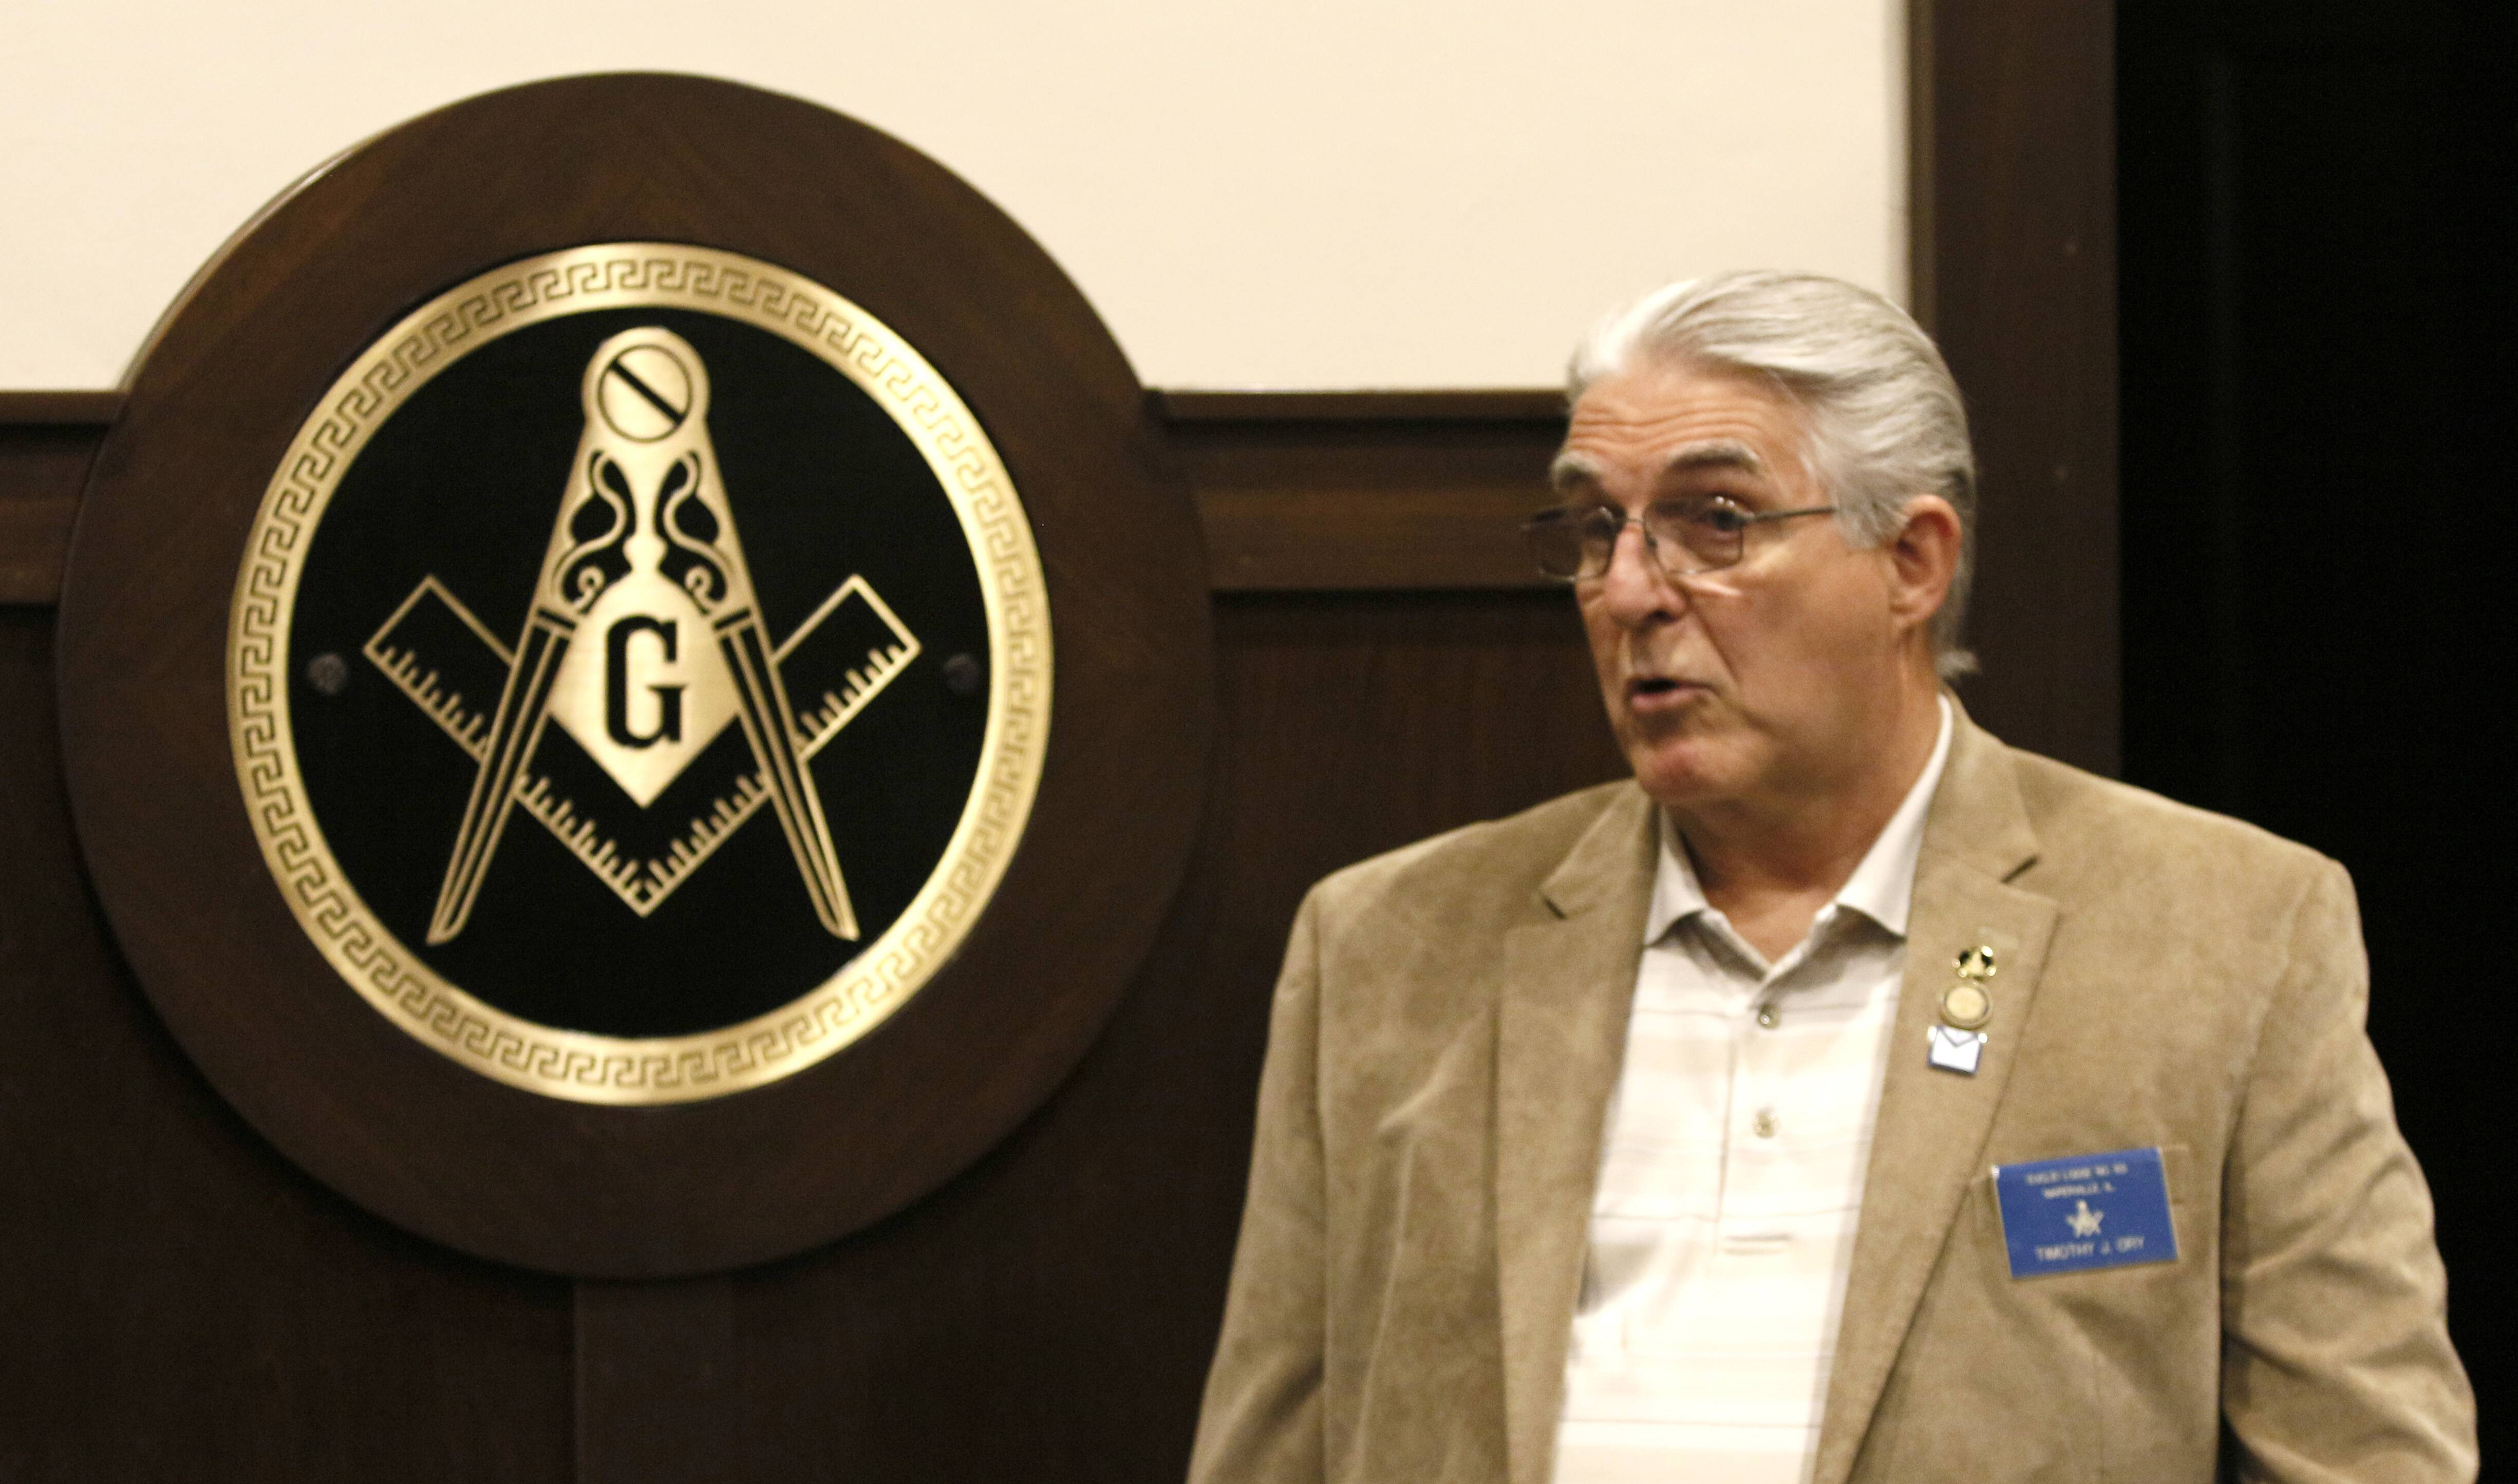 Tim Ory, secretary/historian for the Euclid Lodge No. 65 Ancient Free and Accepted Masons in Naperville, says masonry is all about taking good men and giving them the tools to make themselves better.